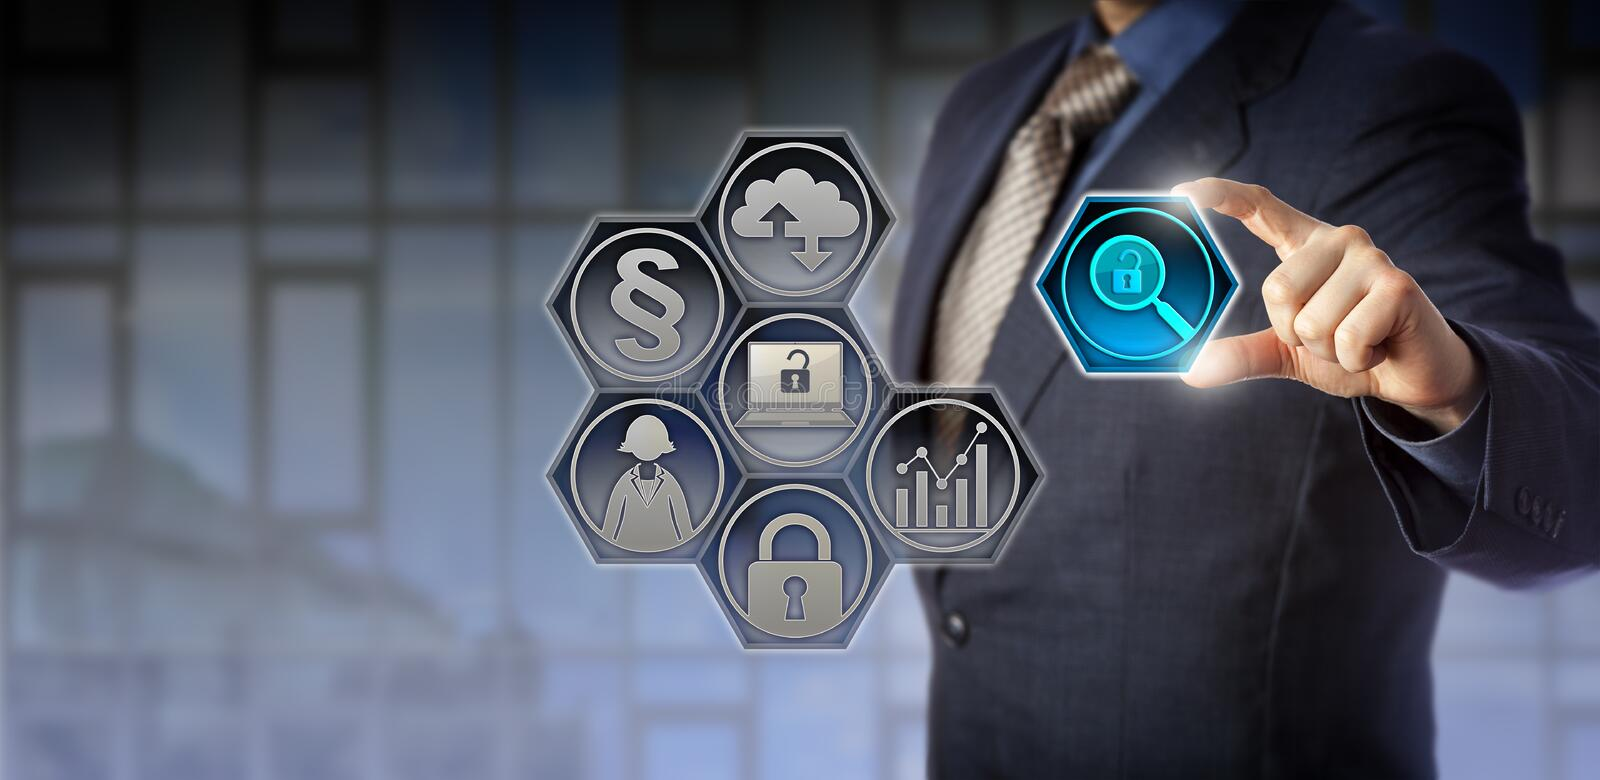 Governance Officer Managing Regulatory Compliance. Blue chip enterprise governance officer tweaking a virtual magnifier icon between thumb and index finger stock images